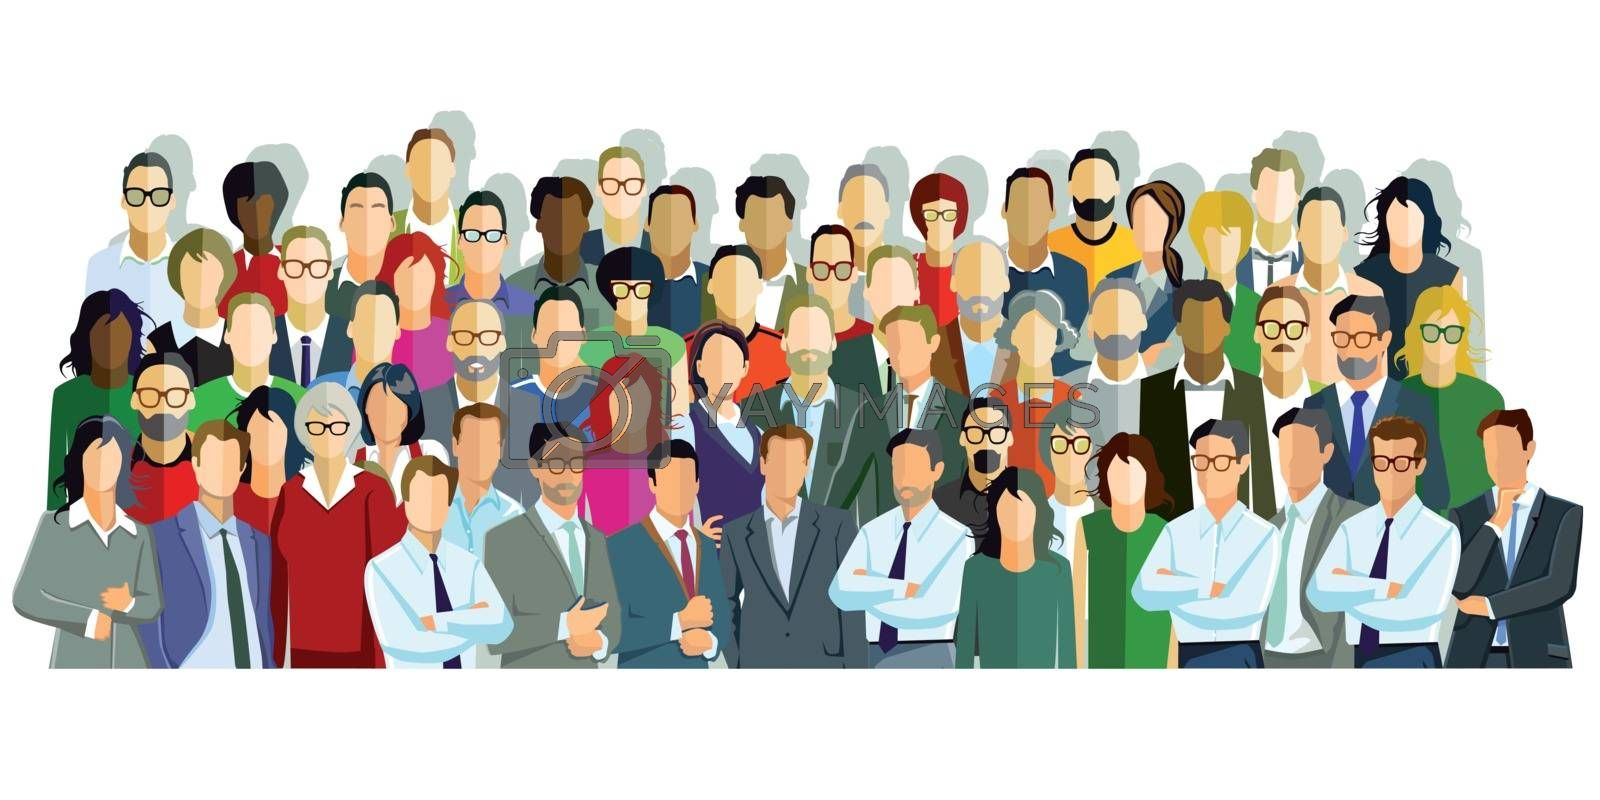 Large group of people introduce themselves, illustration